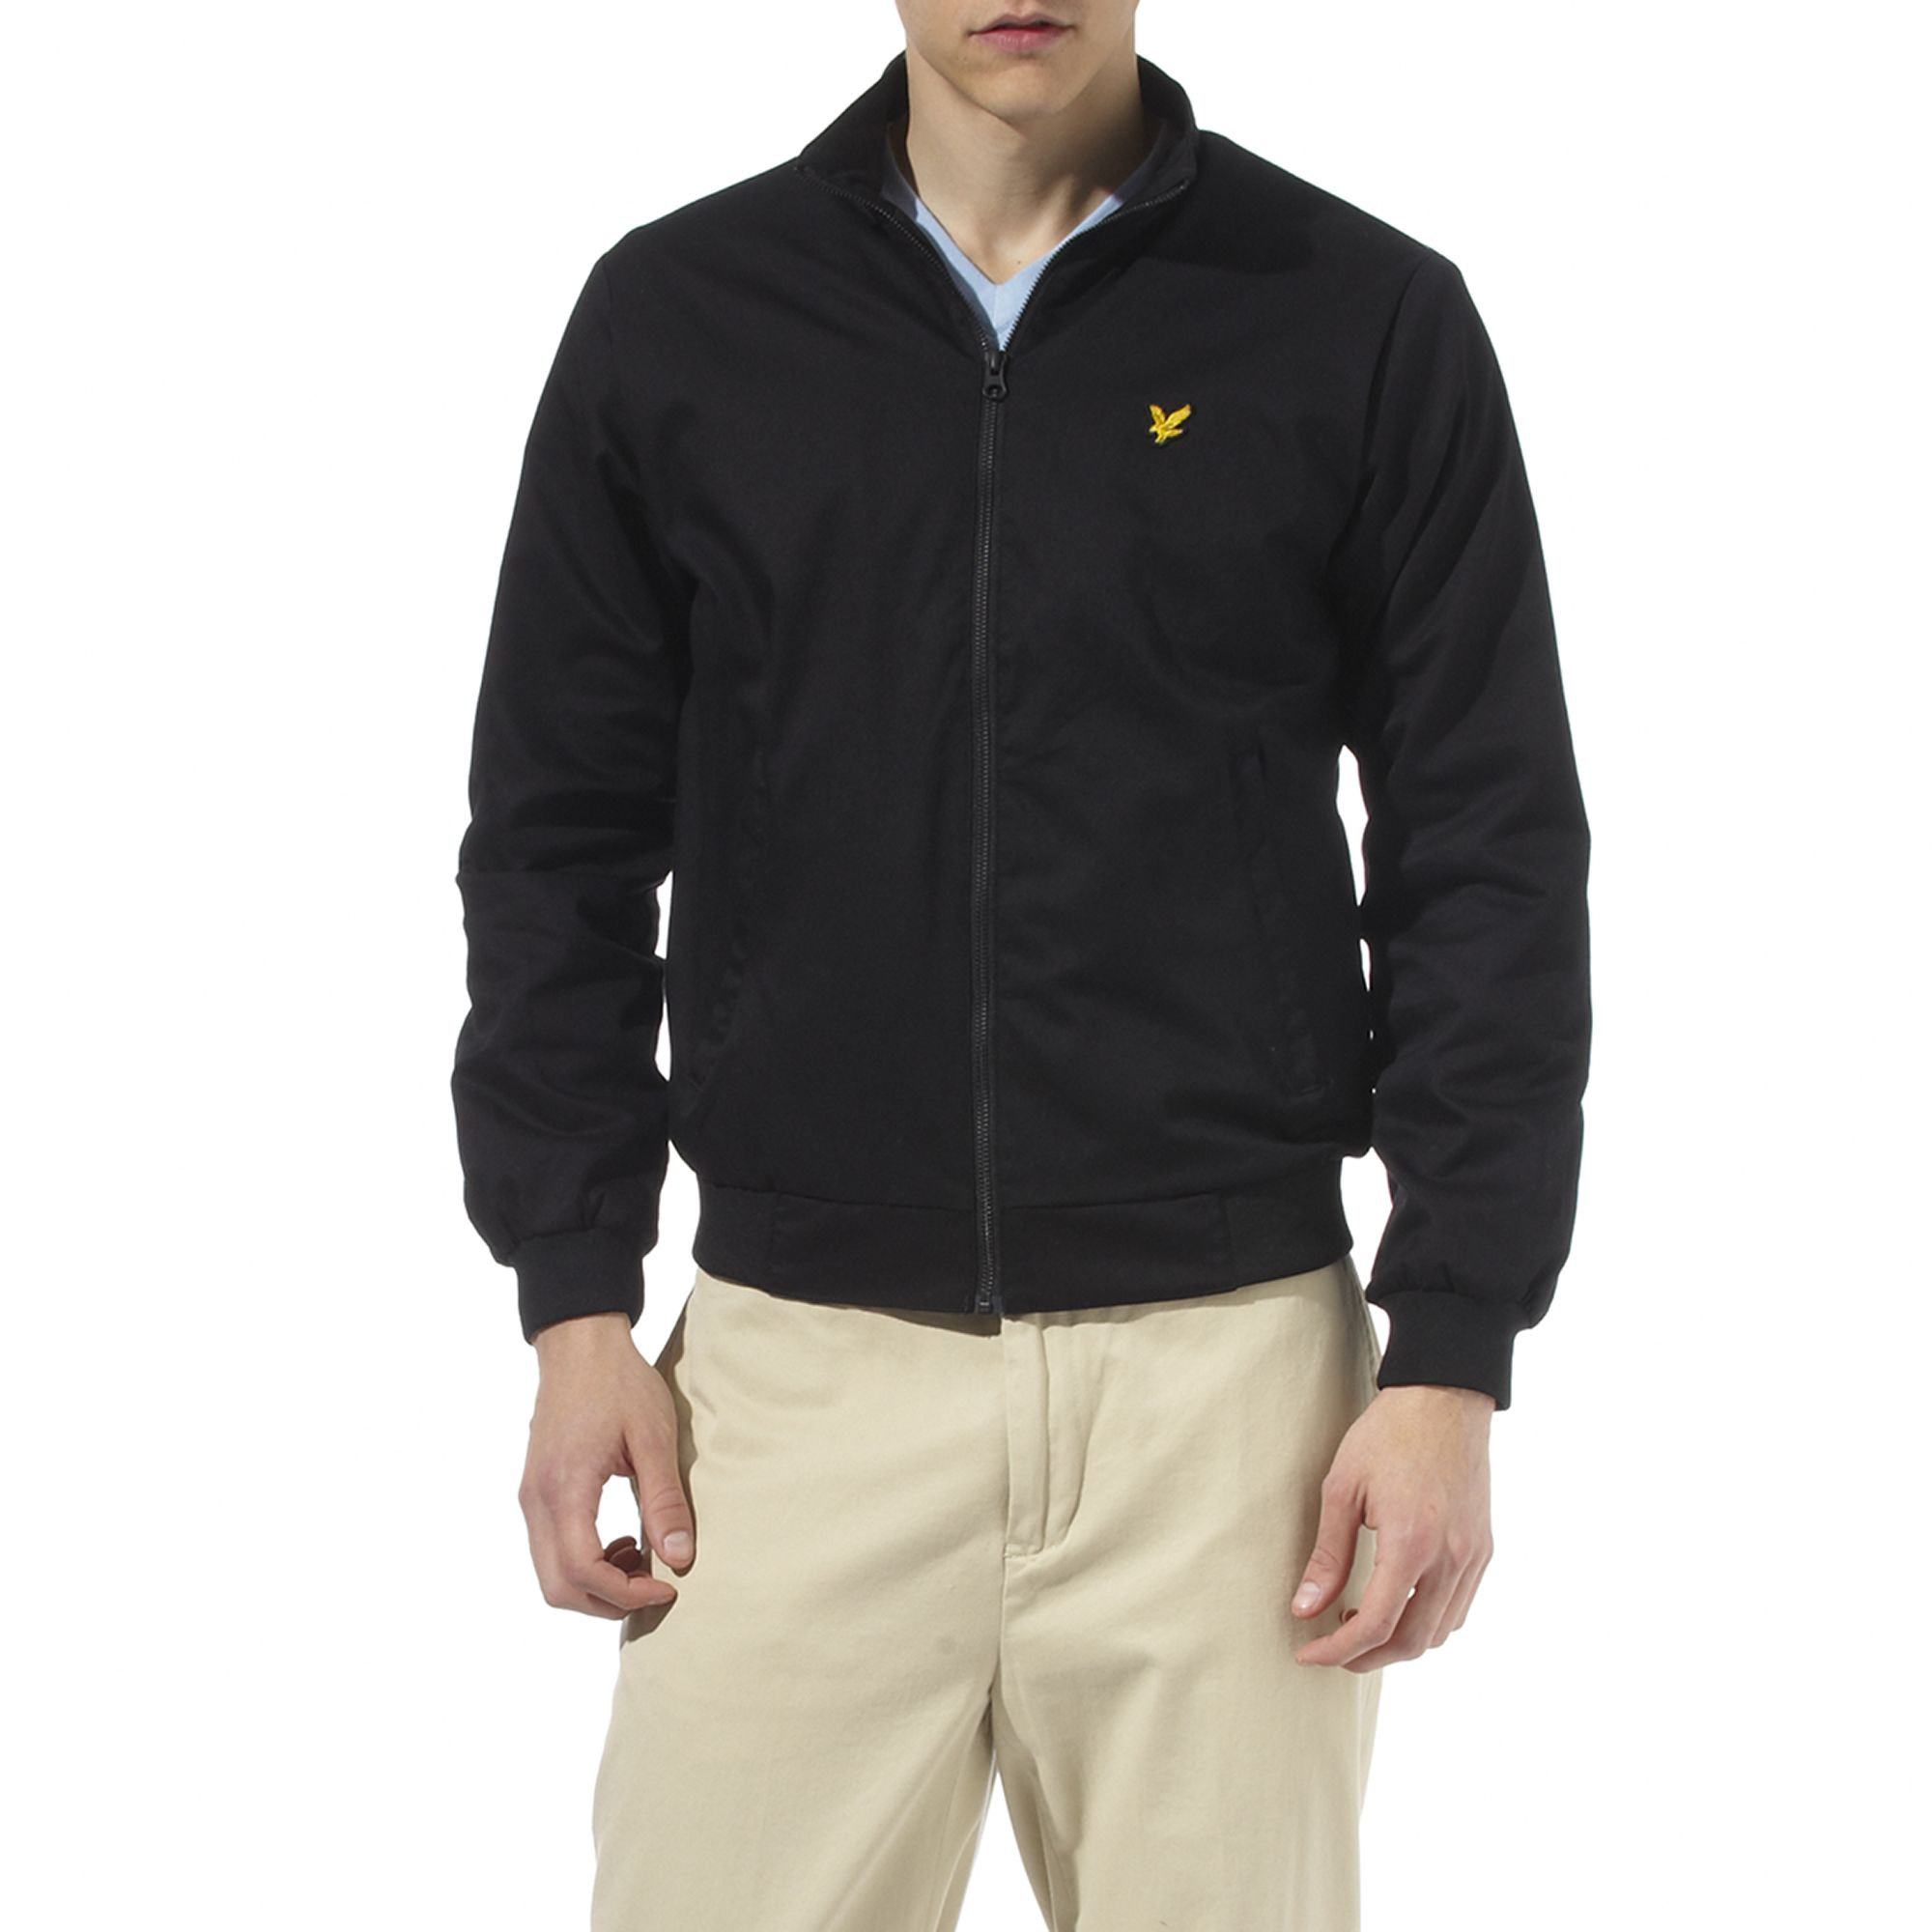 lyle scott bomber jacket in black for men lyst. Black Bedroom Furniture Sets. Home Design Ideas